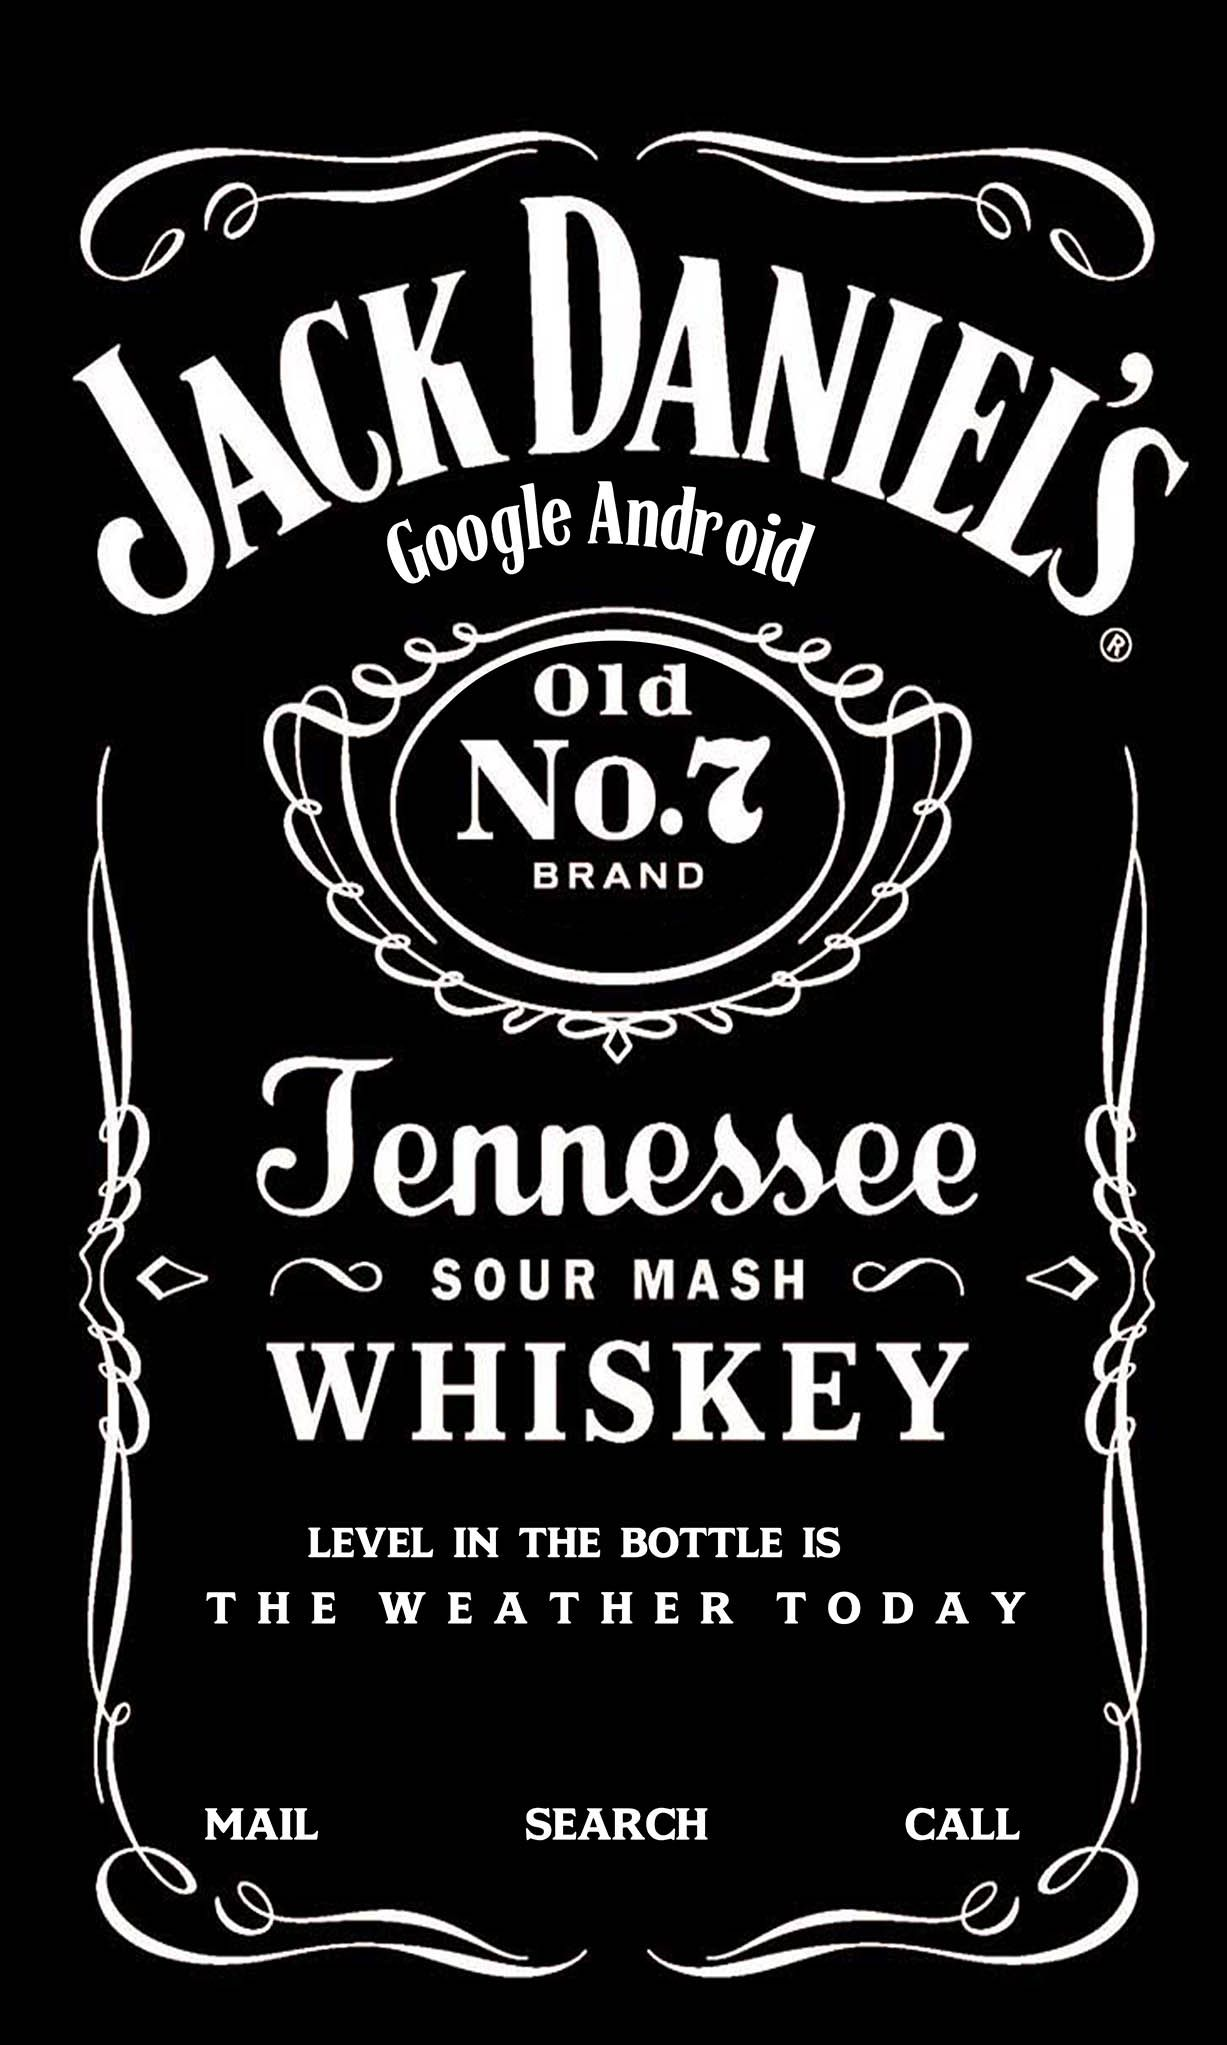 Wallpaper Jack Daniels Android